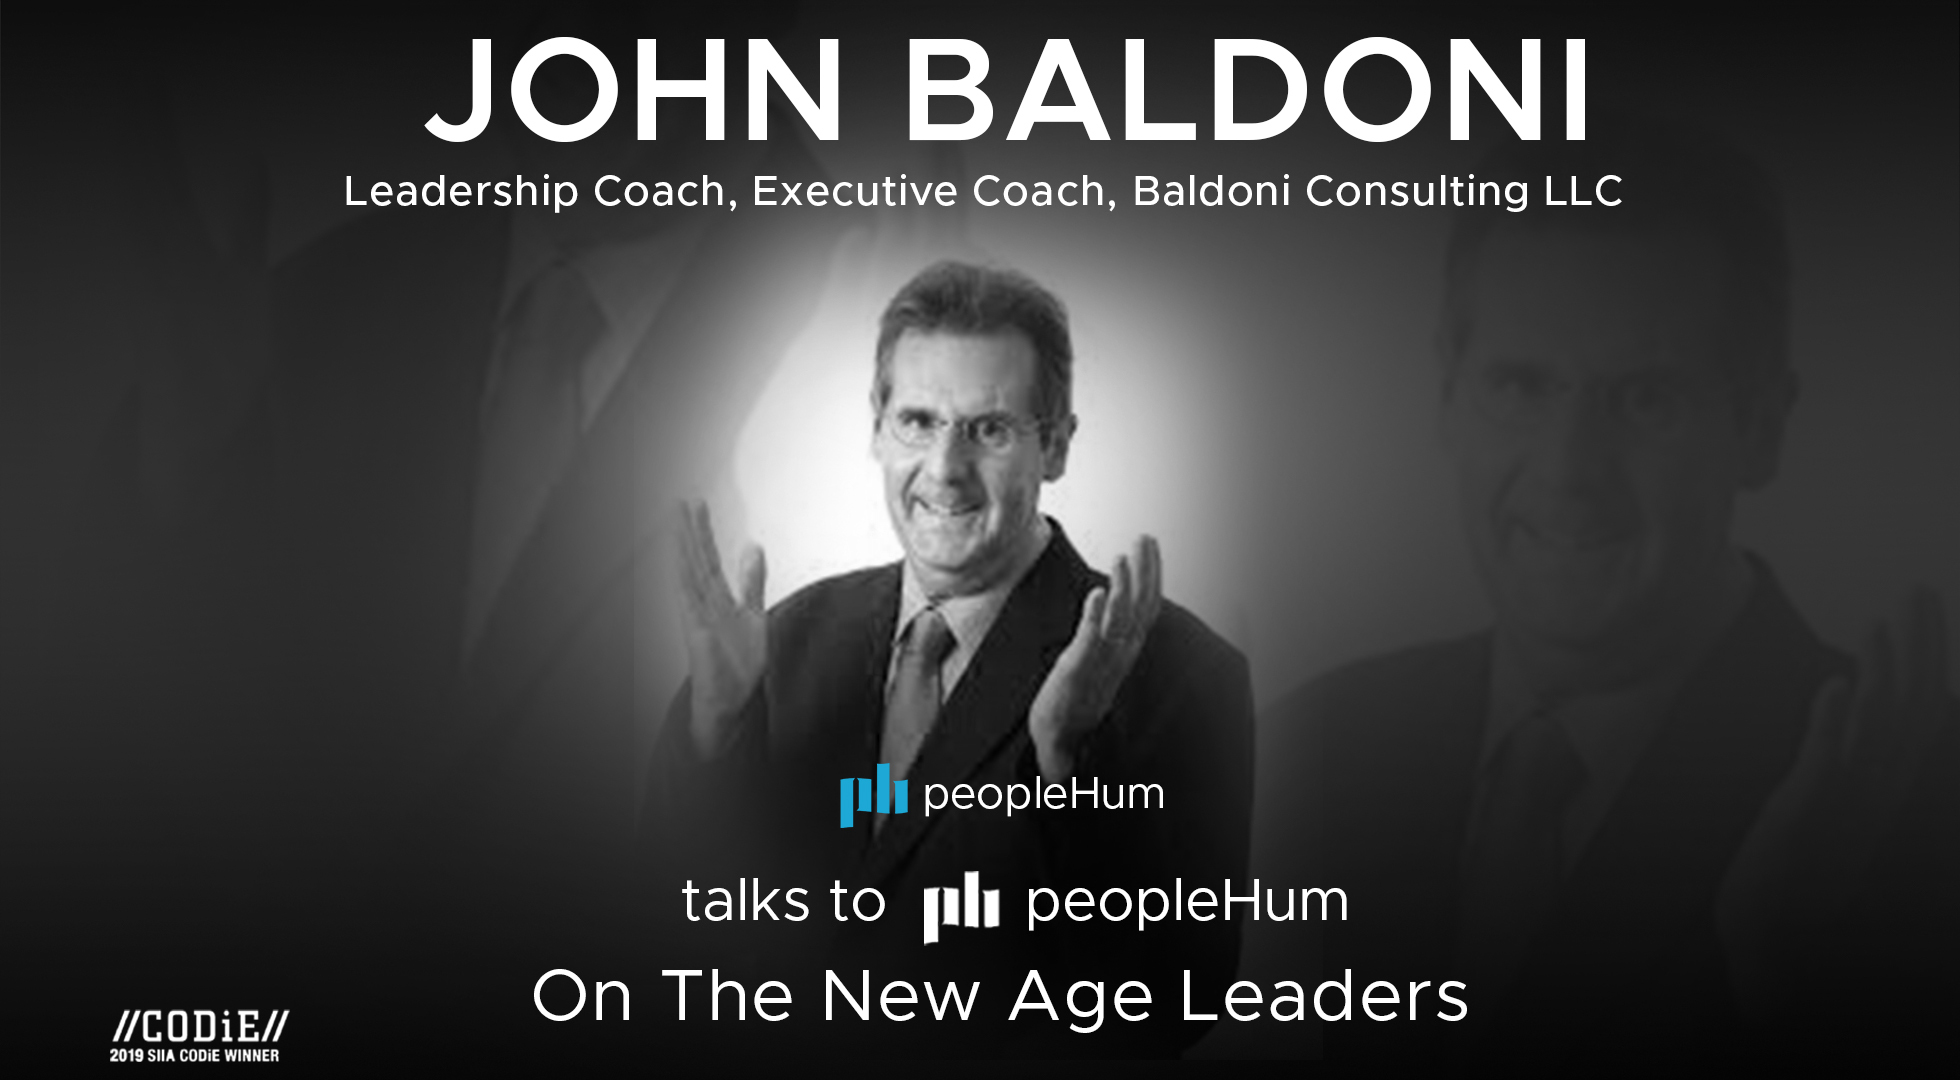 Ladder to the leaders of the new age workplace - John Baldoni [Interview]